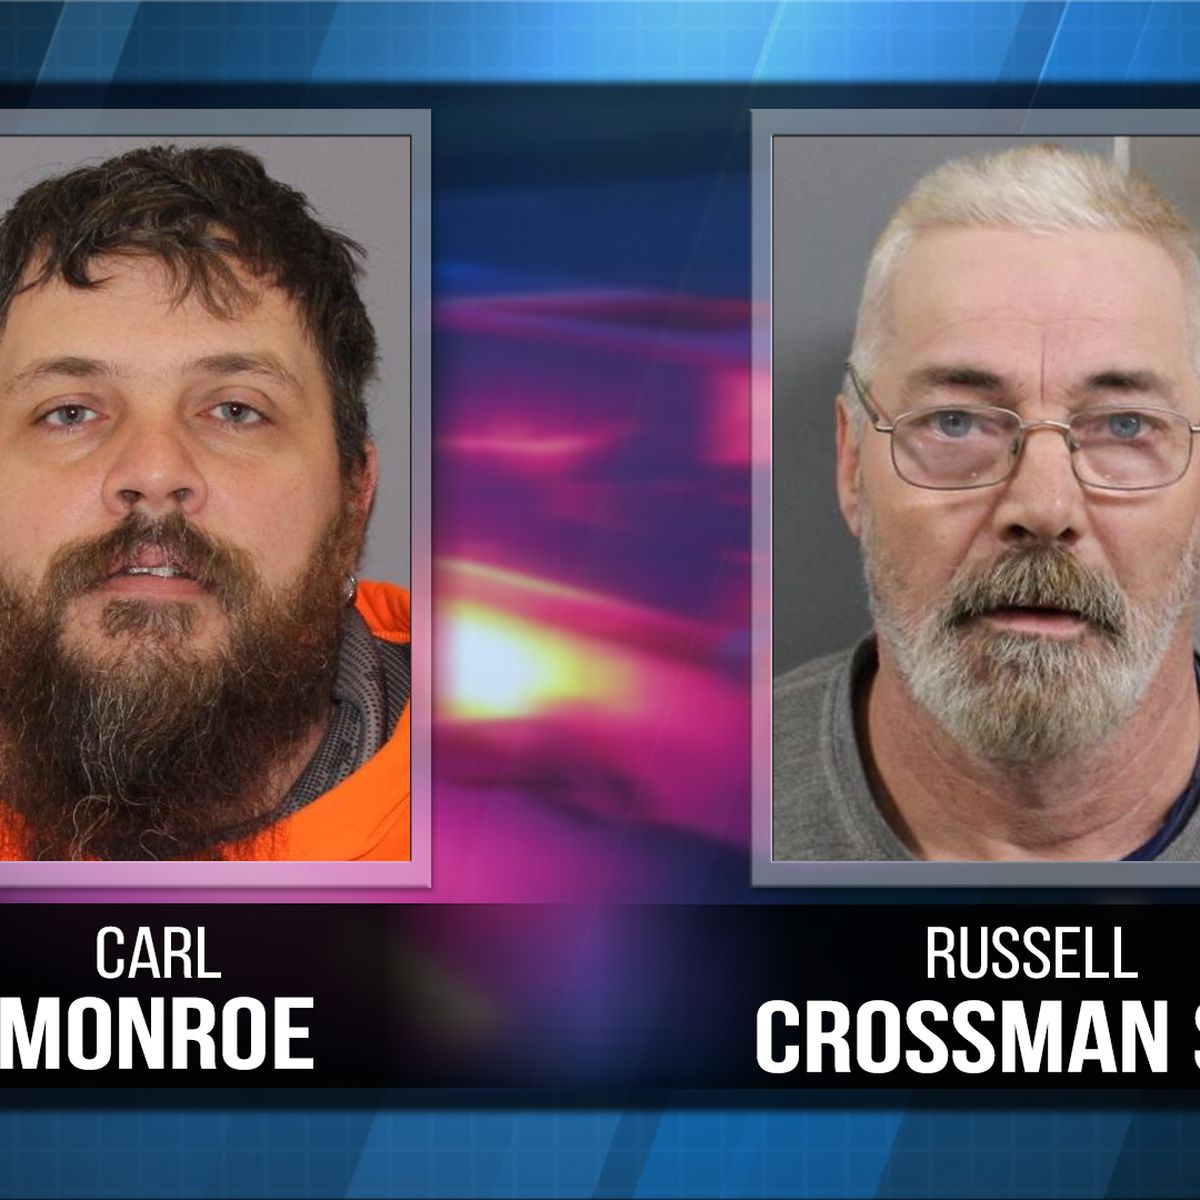 Sex offenders accused of not notifying authorities of address change